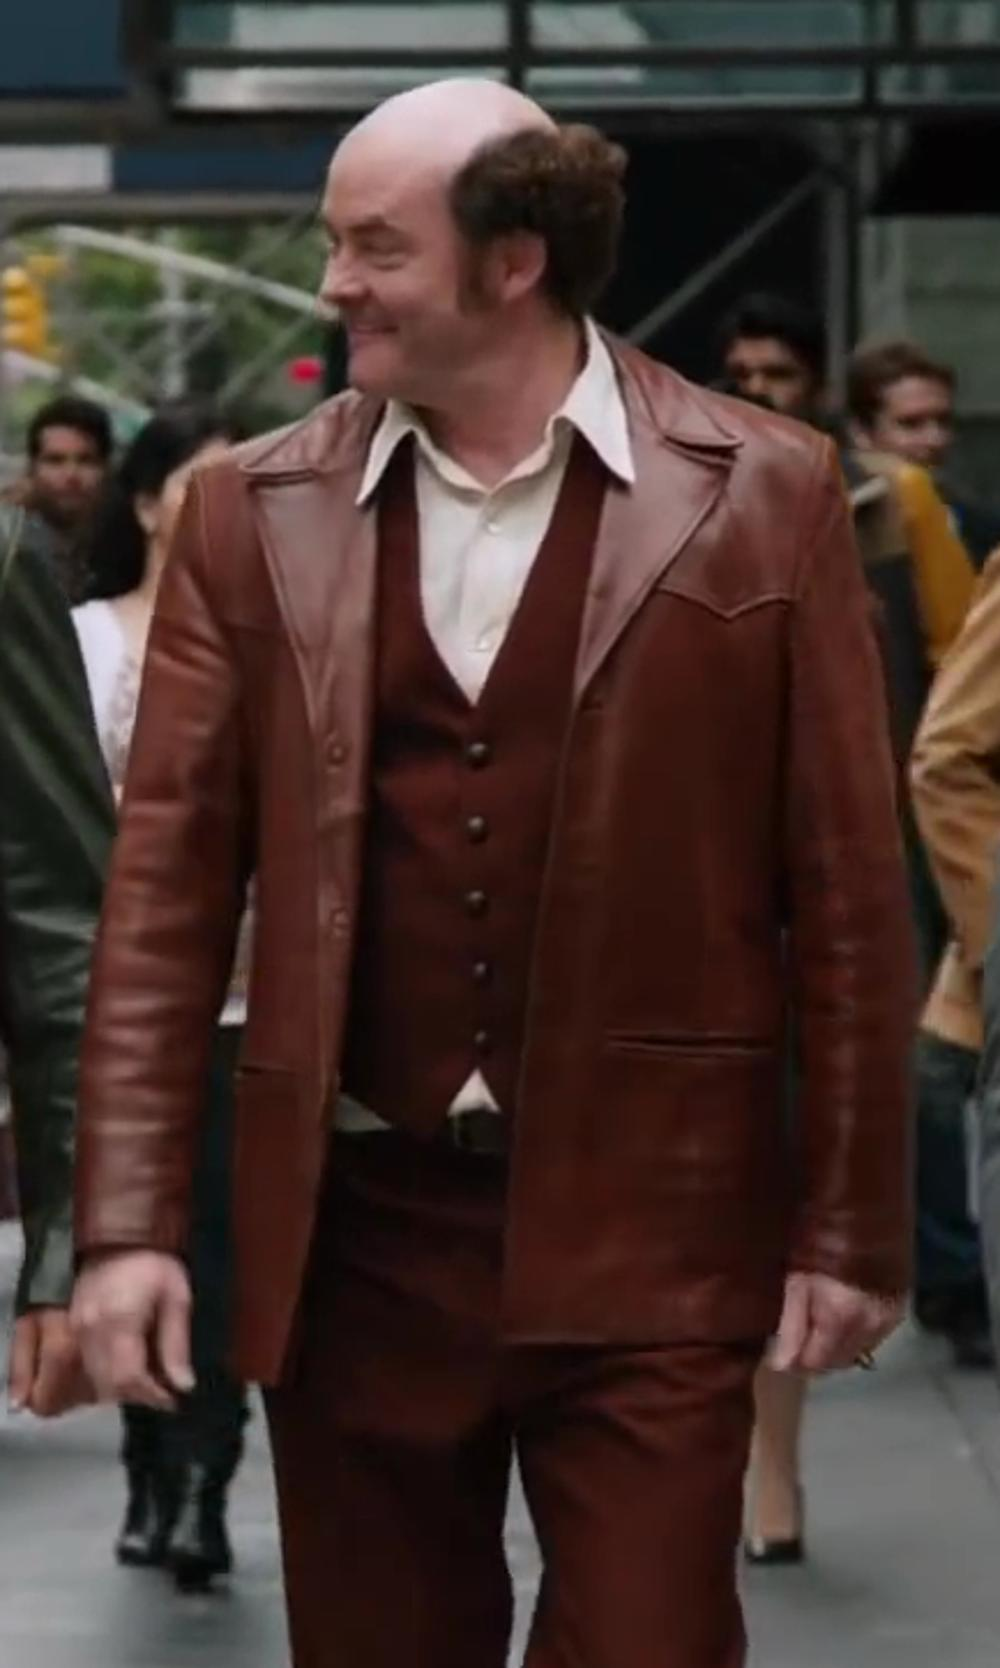 David Koechner with Grais Vintage Mens Grais Angel Skin Leather Mod Jacket Beltback Blazer 1970s in Anchorman 2: The Legend Continues